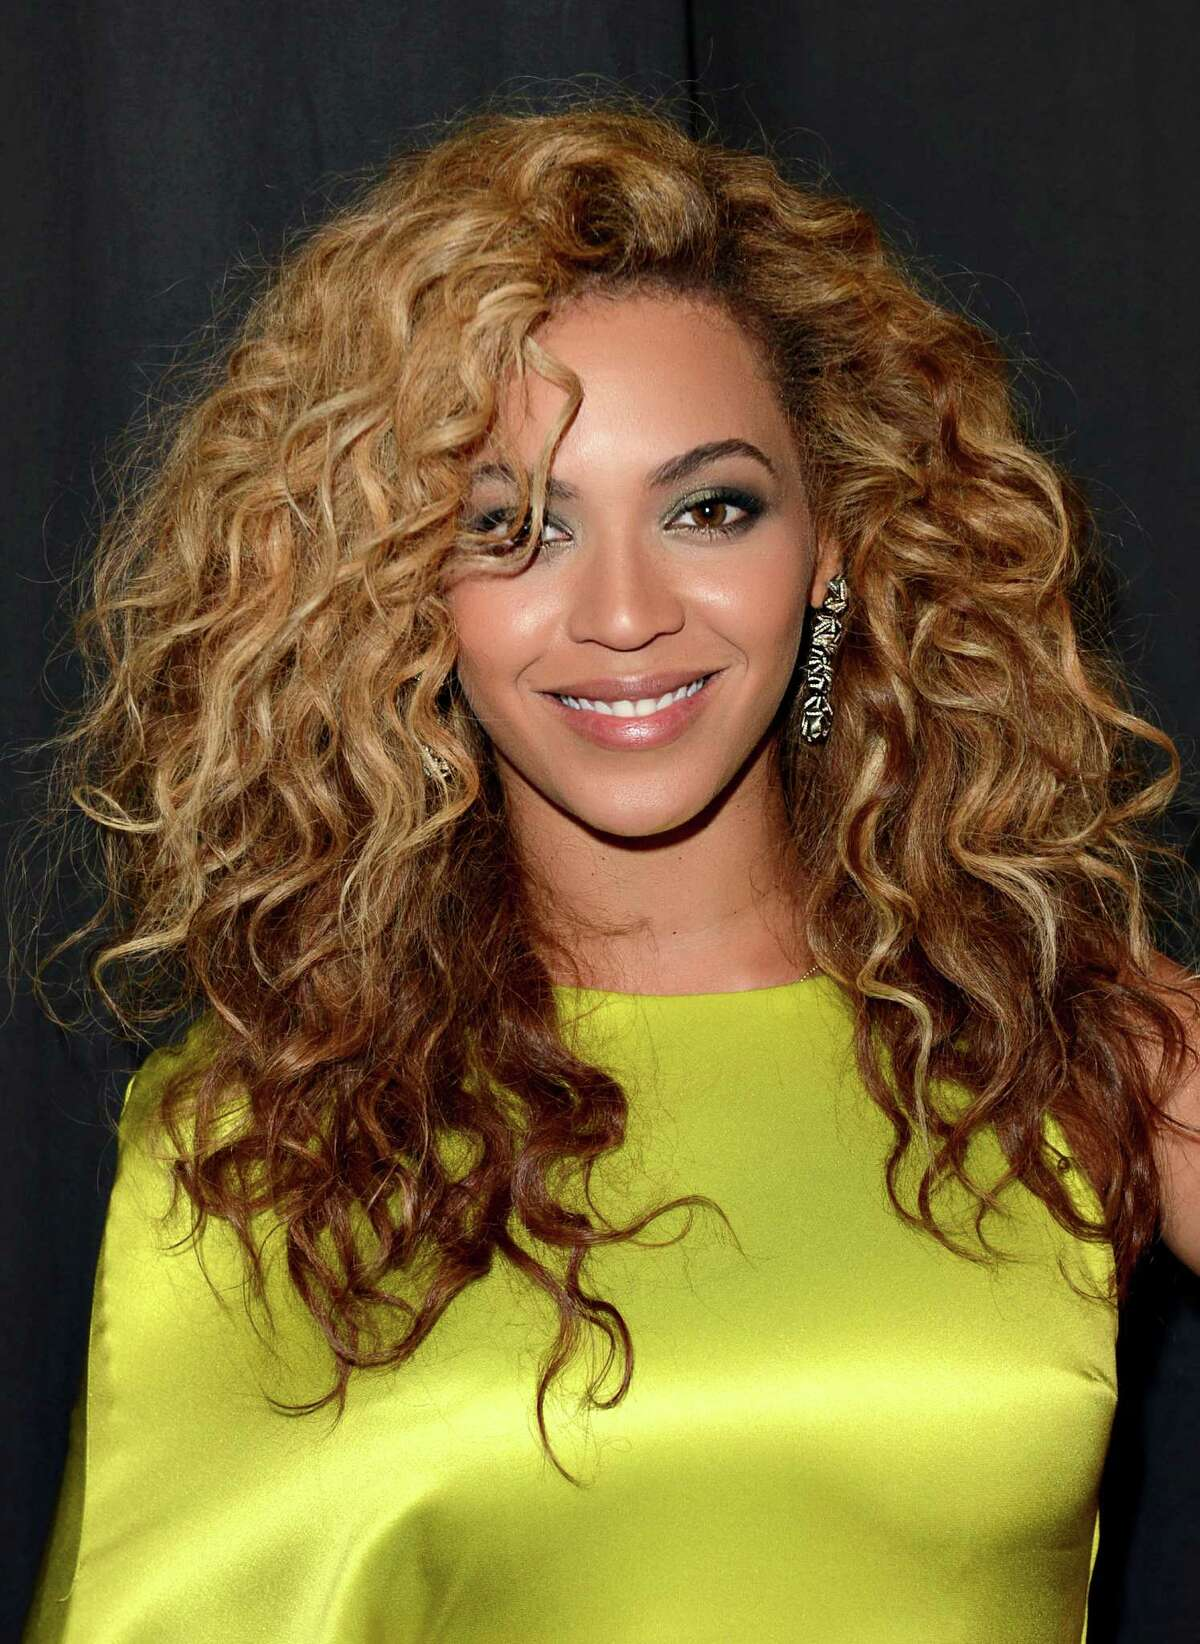 LOS ANGELES, CA - JULY 01: Beyonce attends the 2012 BET Awards at The Shrine Auditorium on July 1, 2012 in Los Angeles, California. (Photo by Jason Merritt/Getty Images For BET)